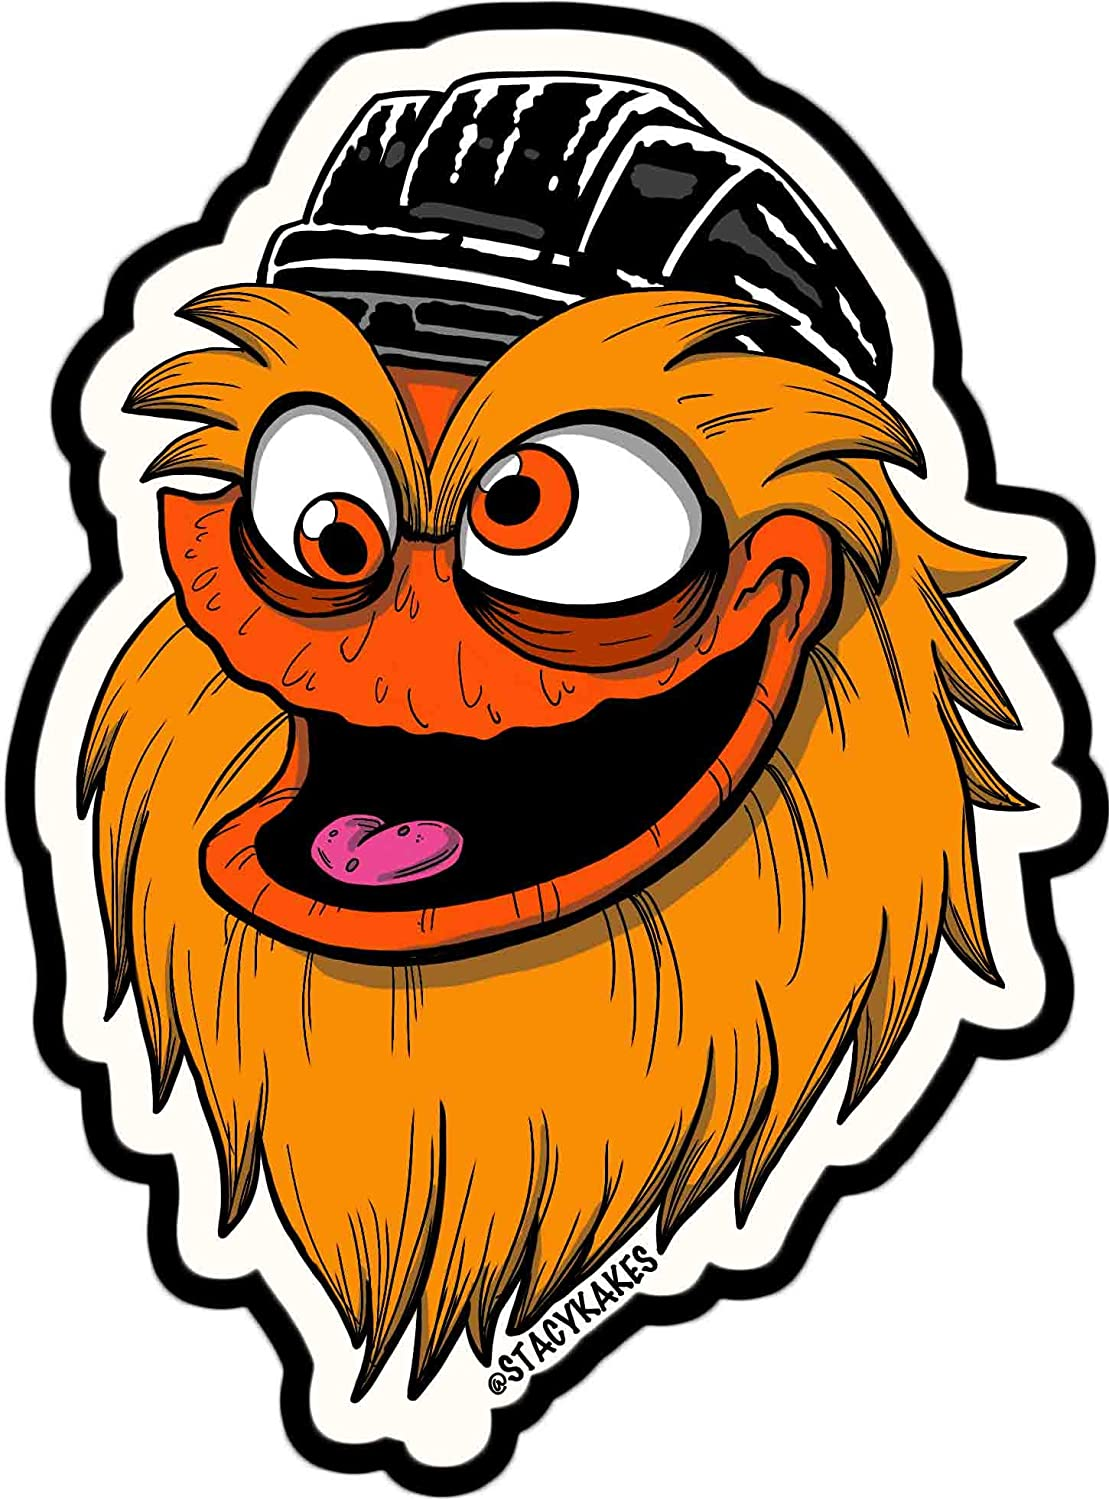 Gritty Philadelphia Decal - for Cars, Laptops, and More! - Use Inside or Outside - Sticks to Any Flat Smooth Surface